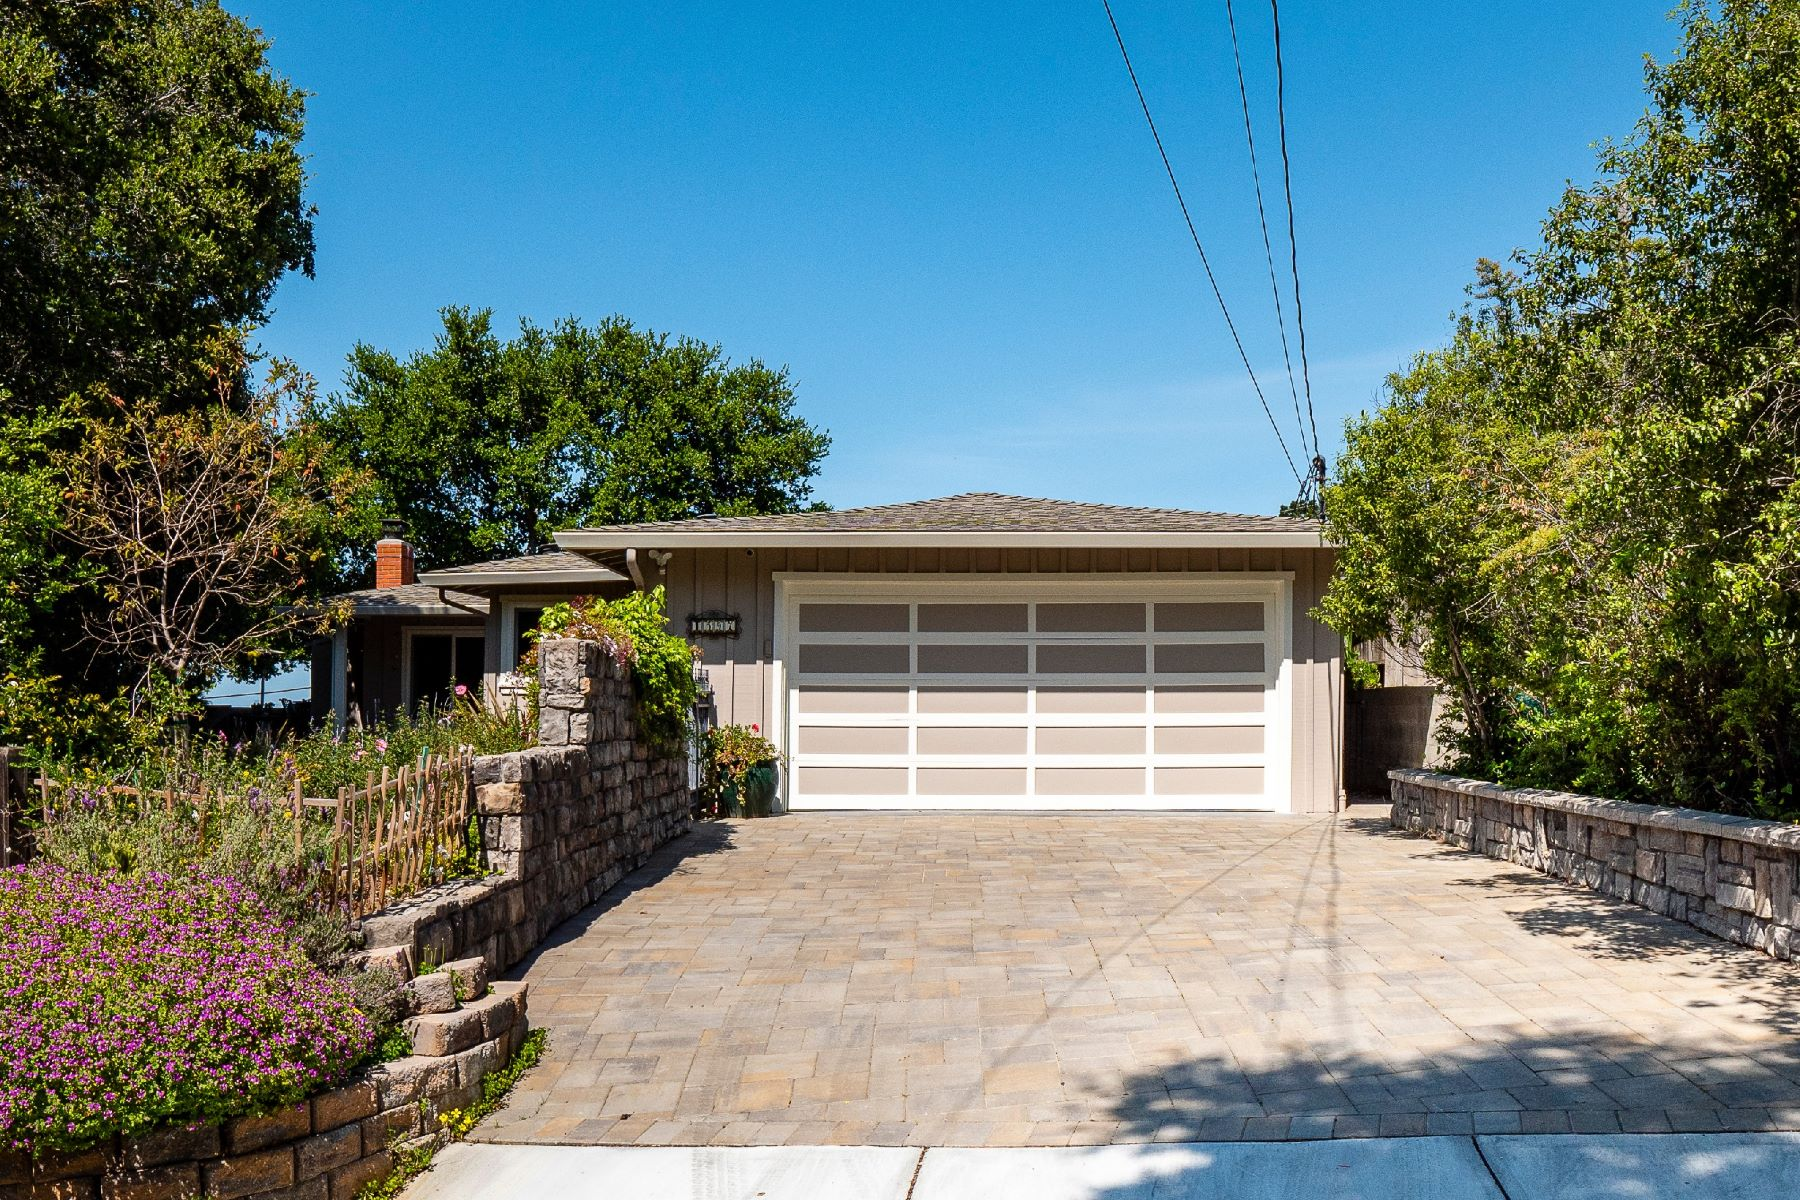 Single Family Homes for Active at Remodeled Ranch Home with San Francisco Views 1597 Harbor Boulevard Belmont, California 94002 United States